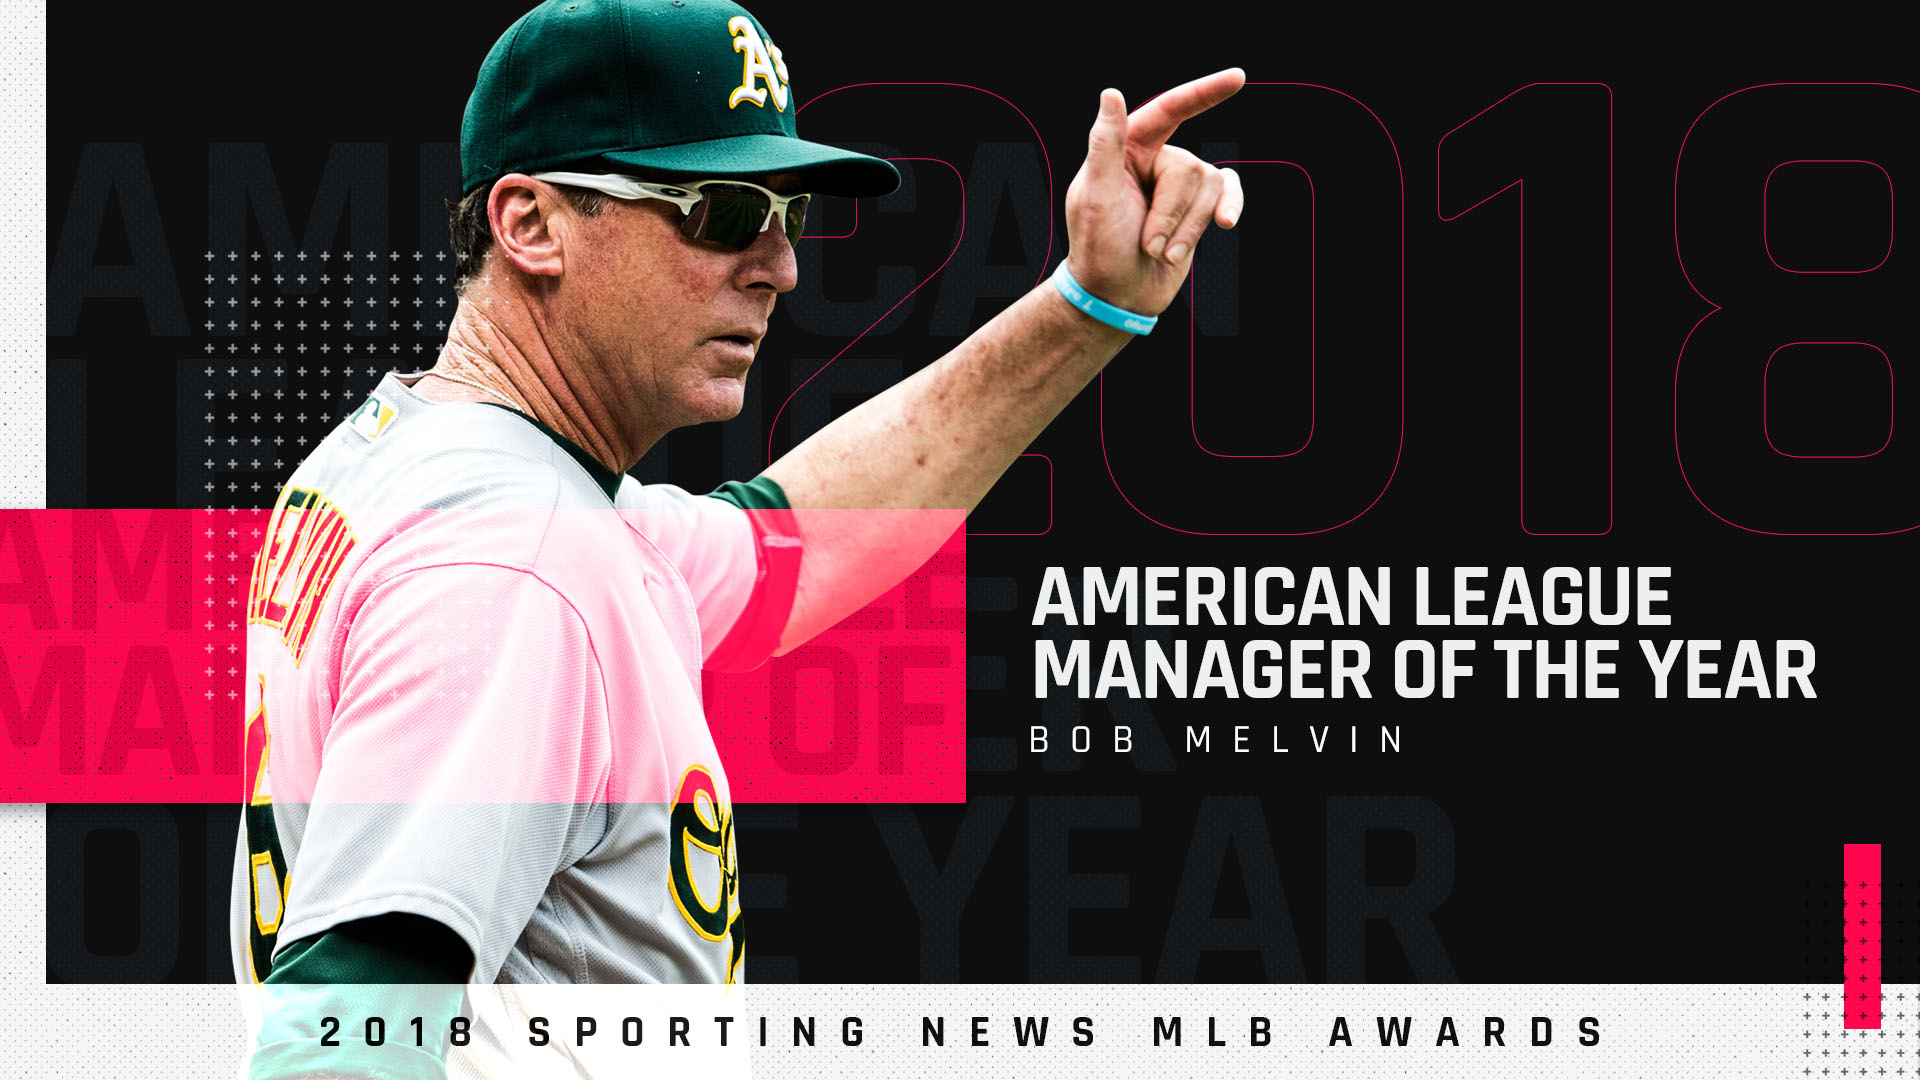 Mlbawards-2018-tuesday-al-manager_1a4sjjojvi02i1l17duk27rz06